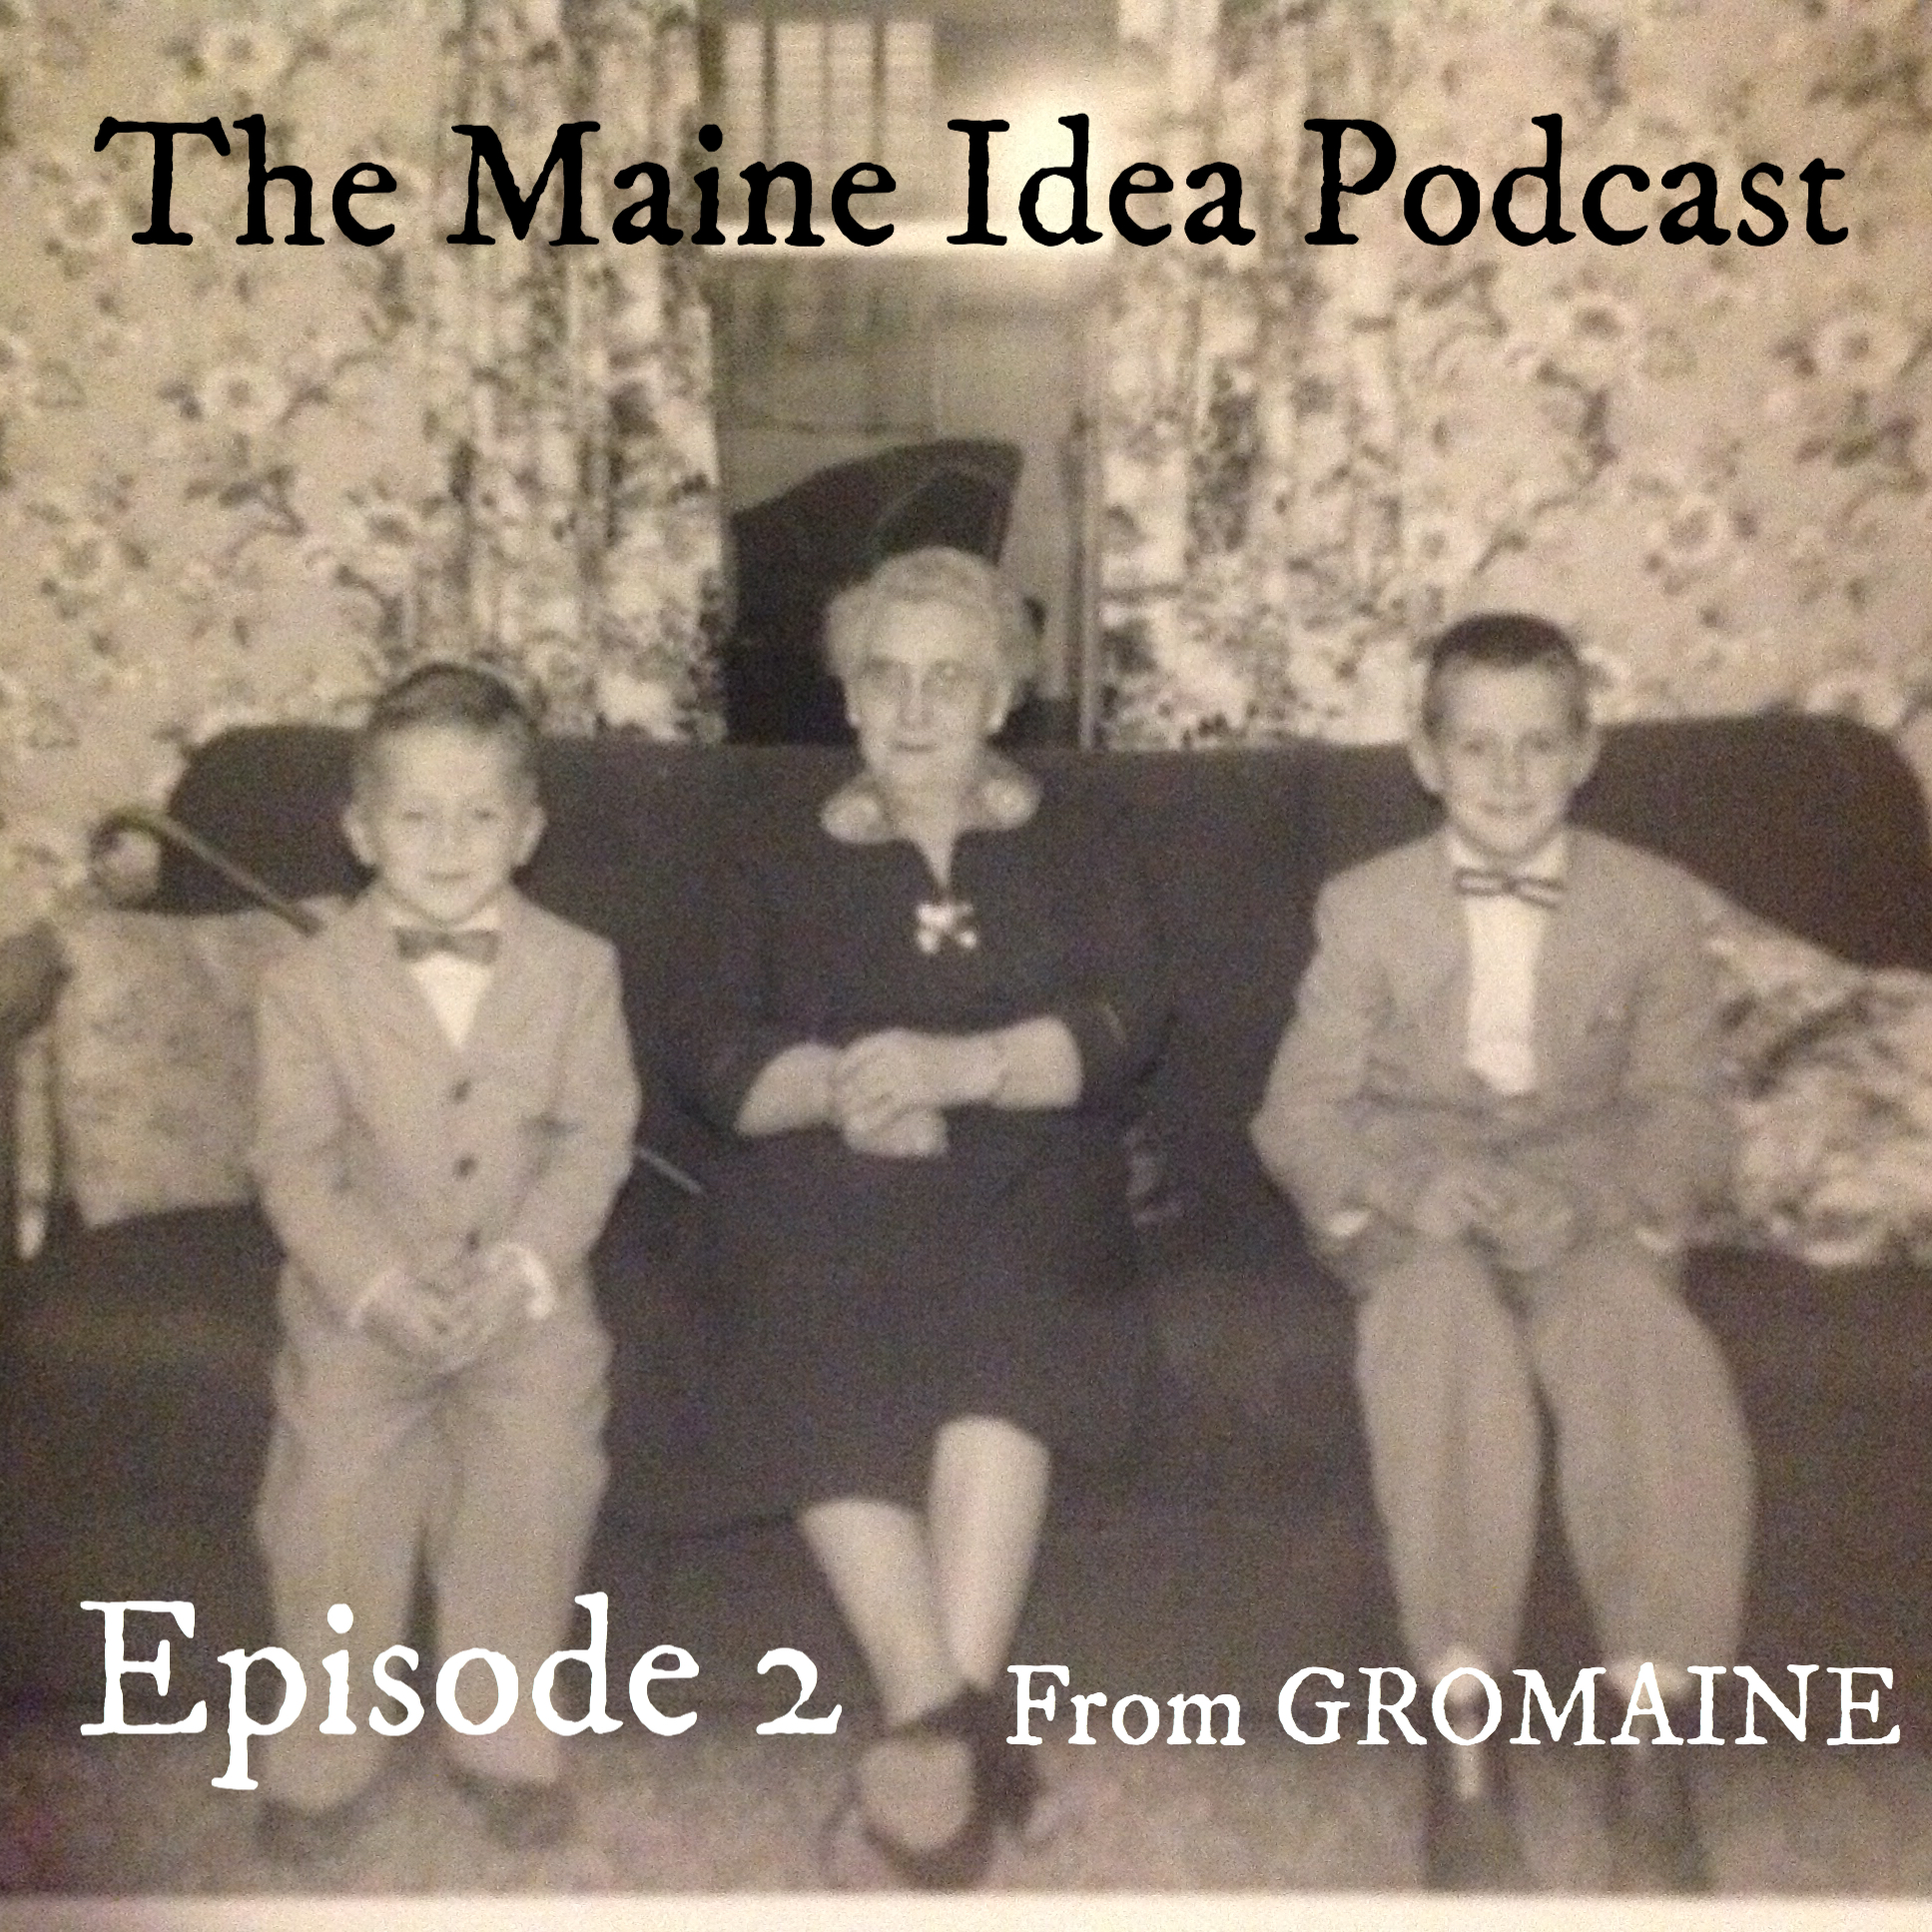 Episode 2: A Chat With Our Dad